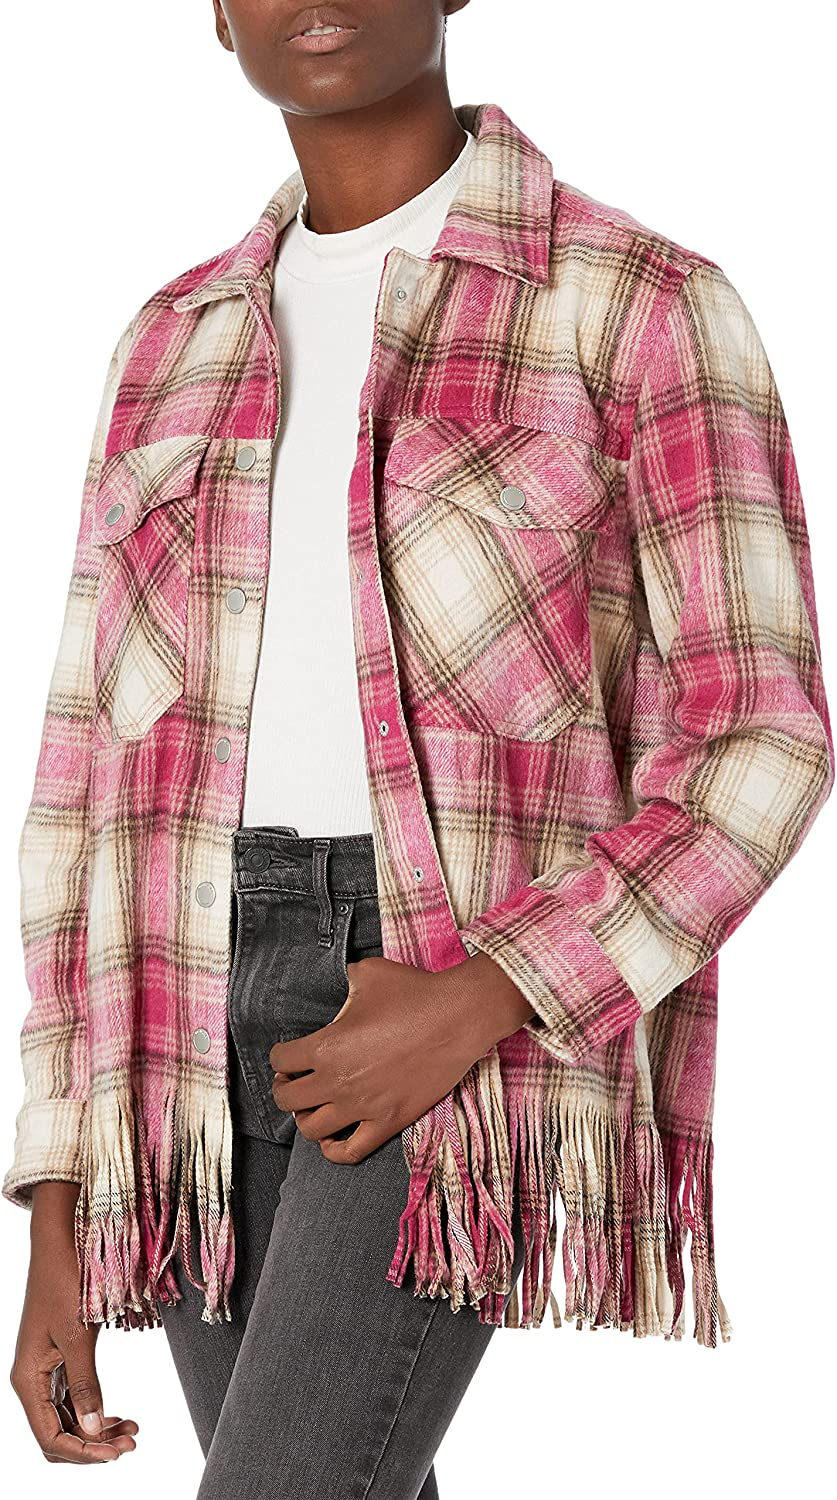 [BLANKNYC] Womens Snap Front Plaid Shirt with Fringe Hem Detail That Can Also Be Worn as a Jacket